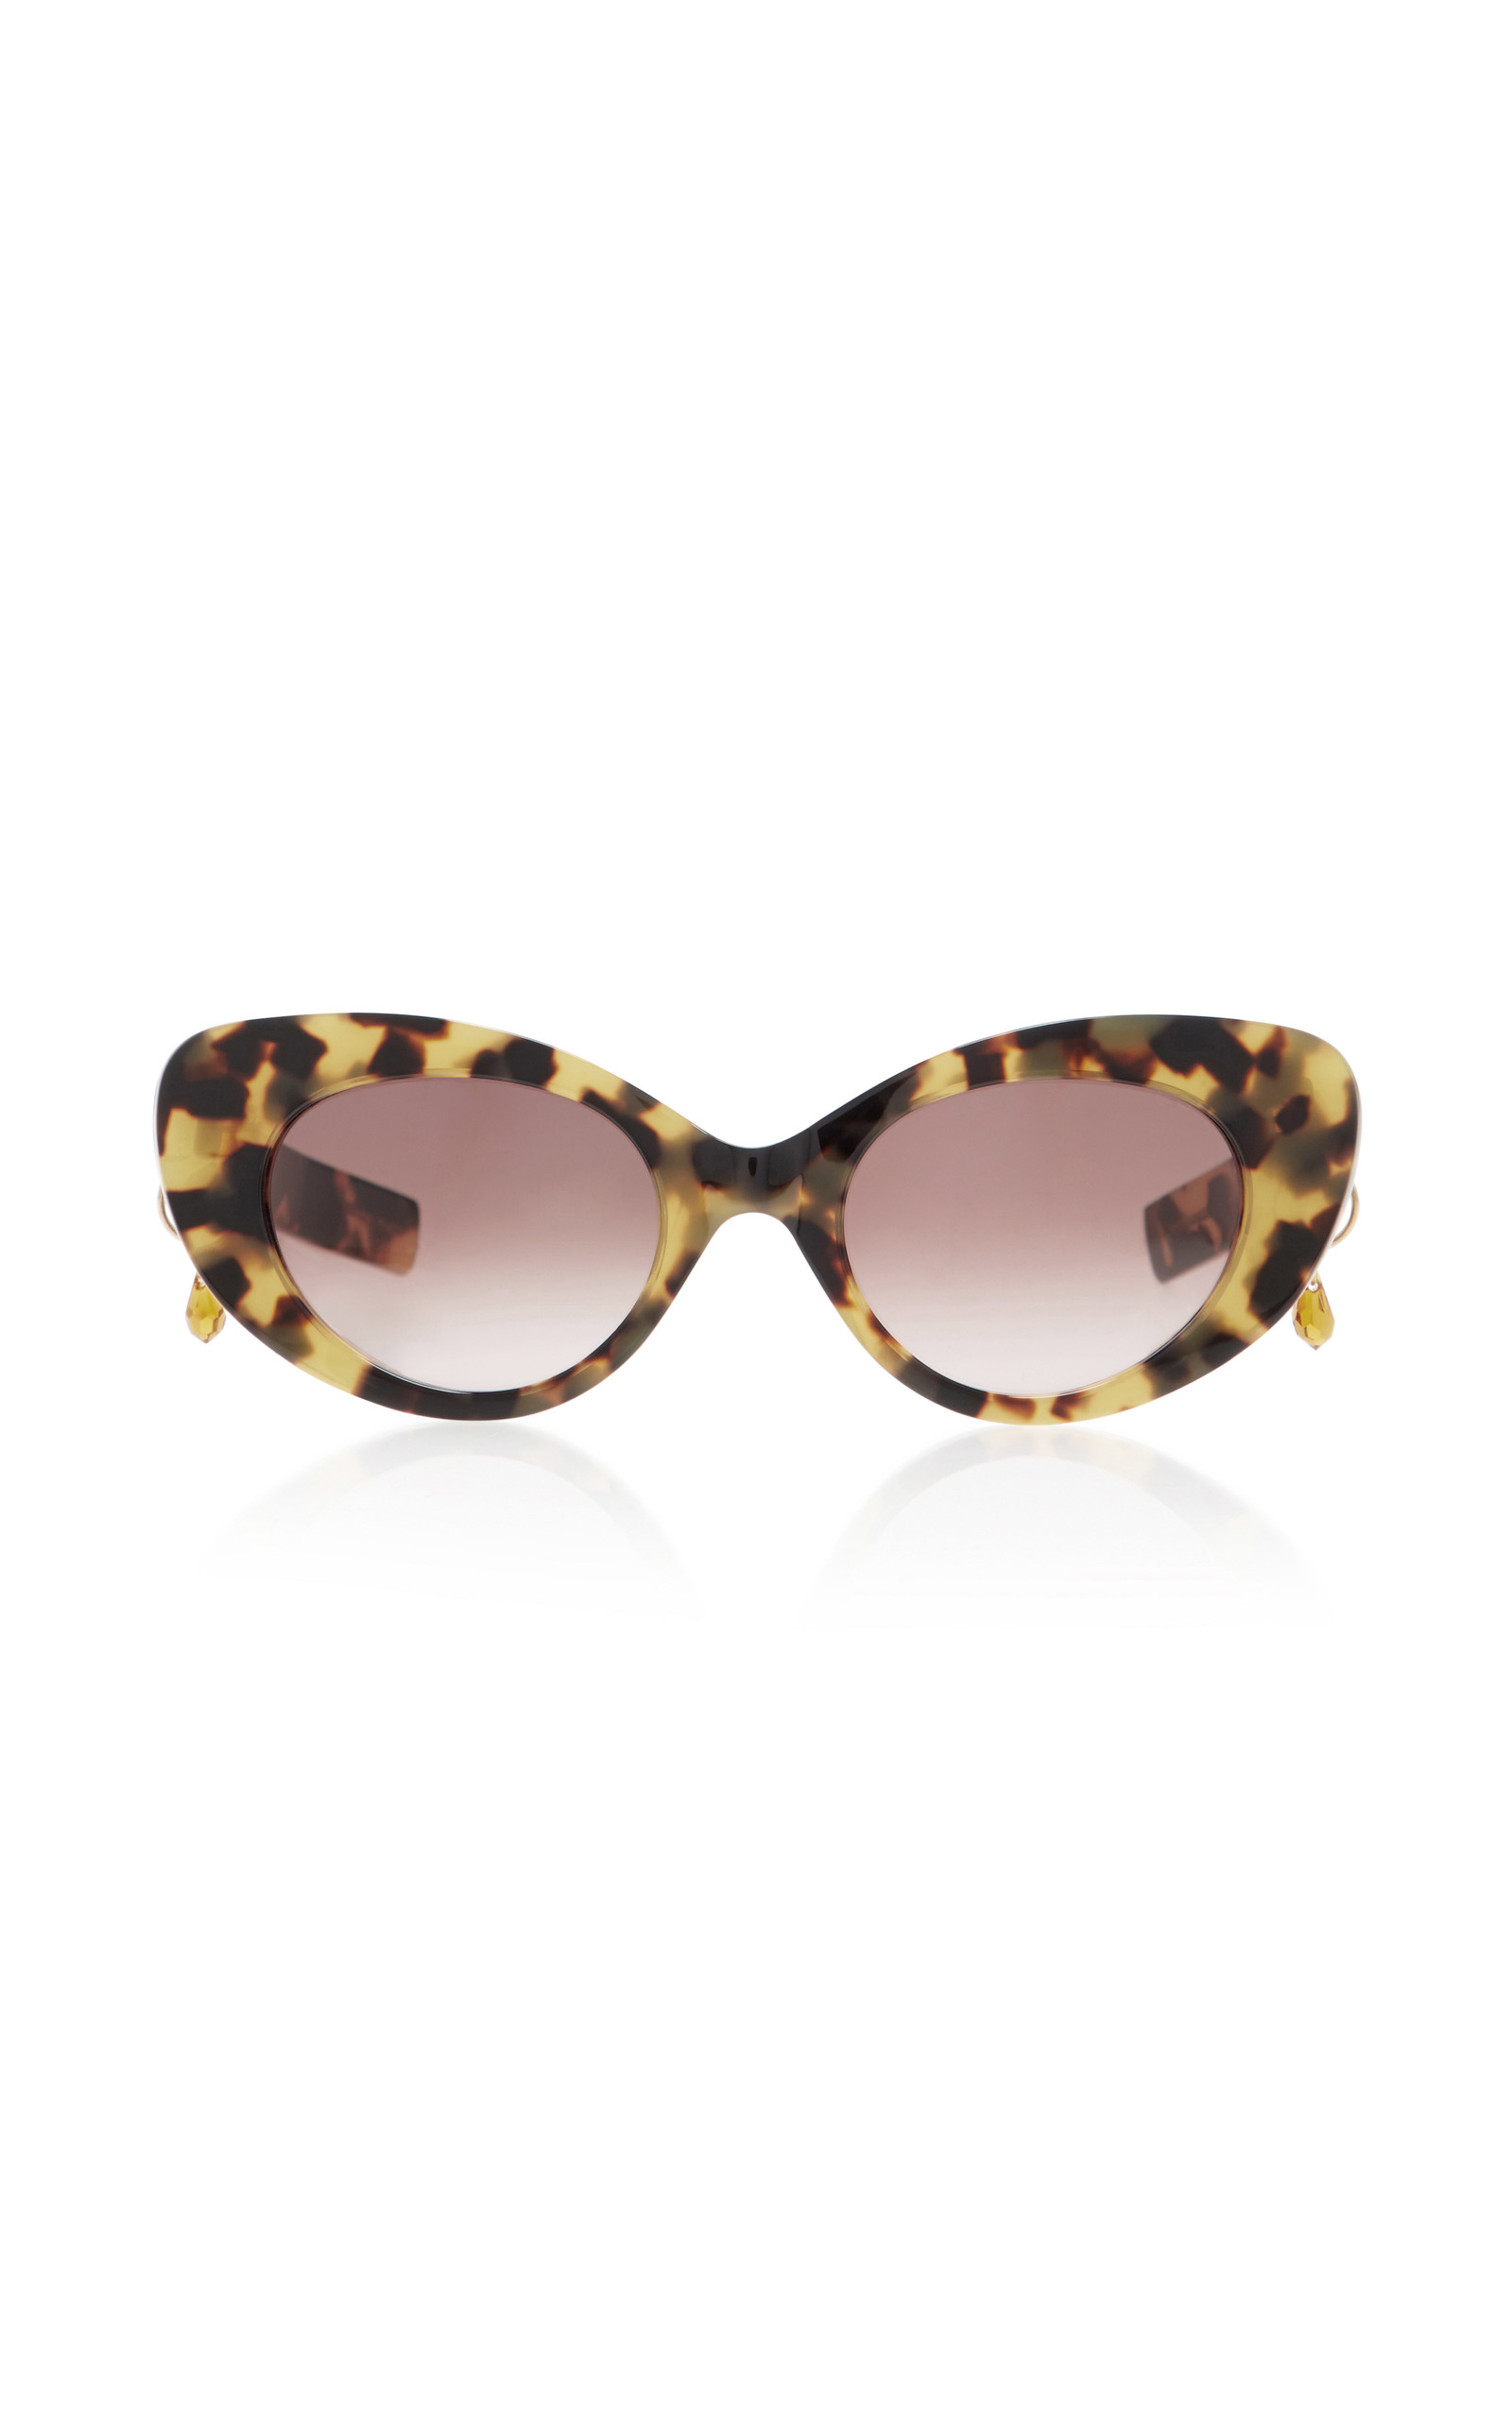 fff74d6ec7 M O Exclusive Poms   Pared Tortoiseshell Cat-Eye Sunglasses by Pared ...